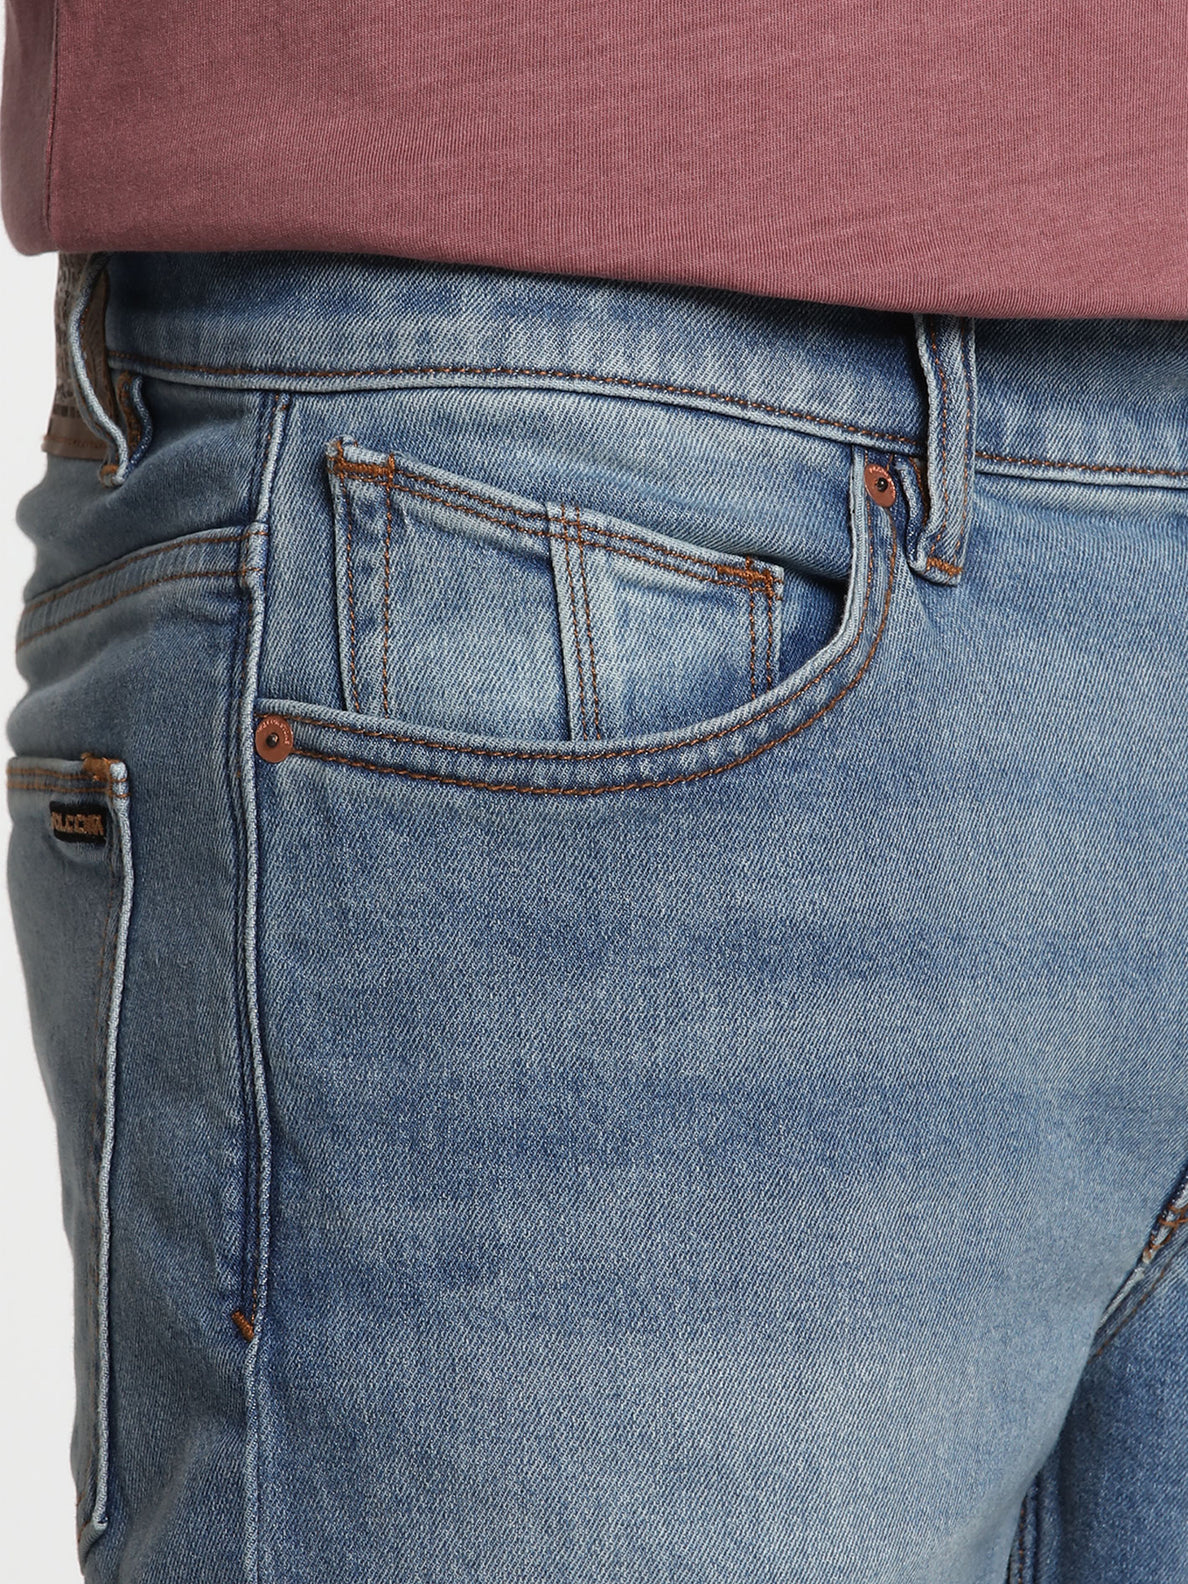 Solver Modern Fit Jeans - Light Wicked Blue (A1931503_LWB) [5]